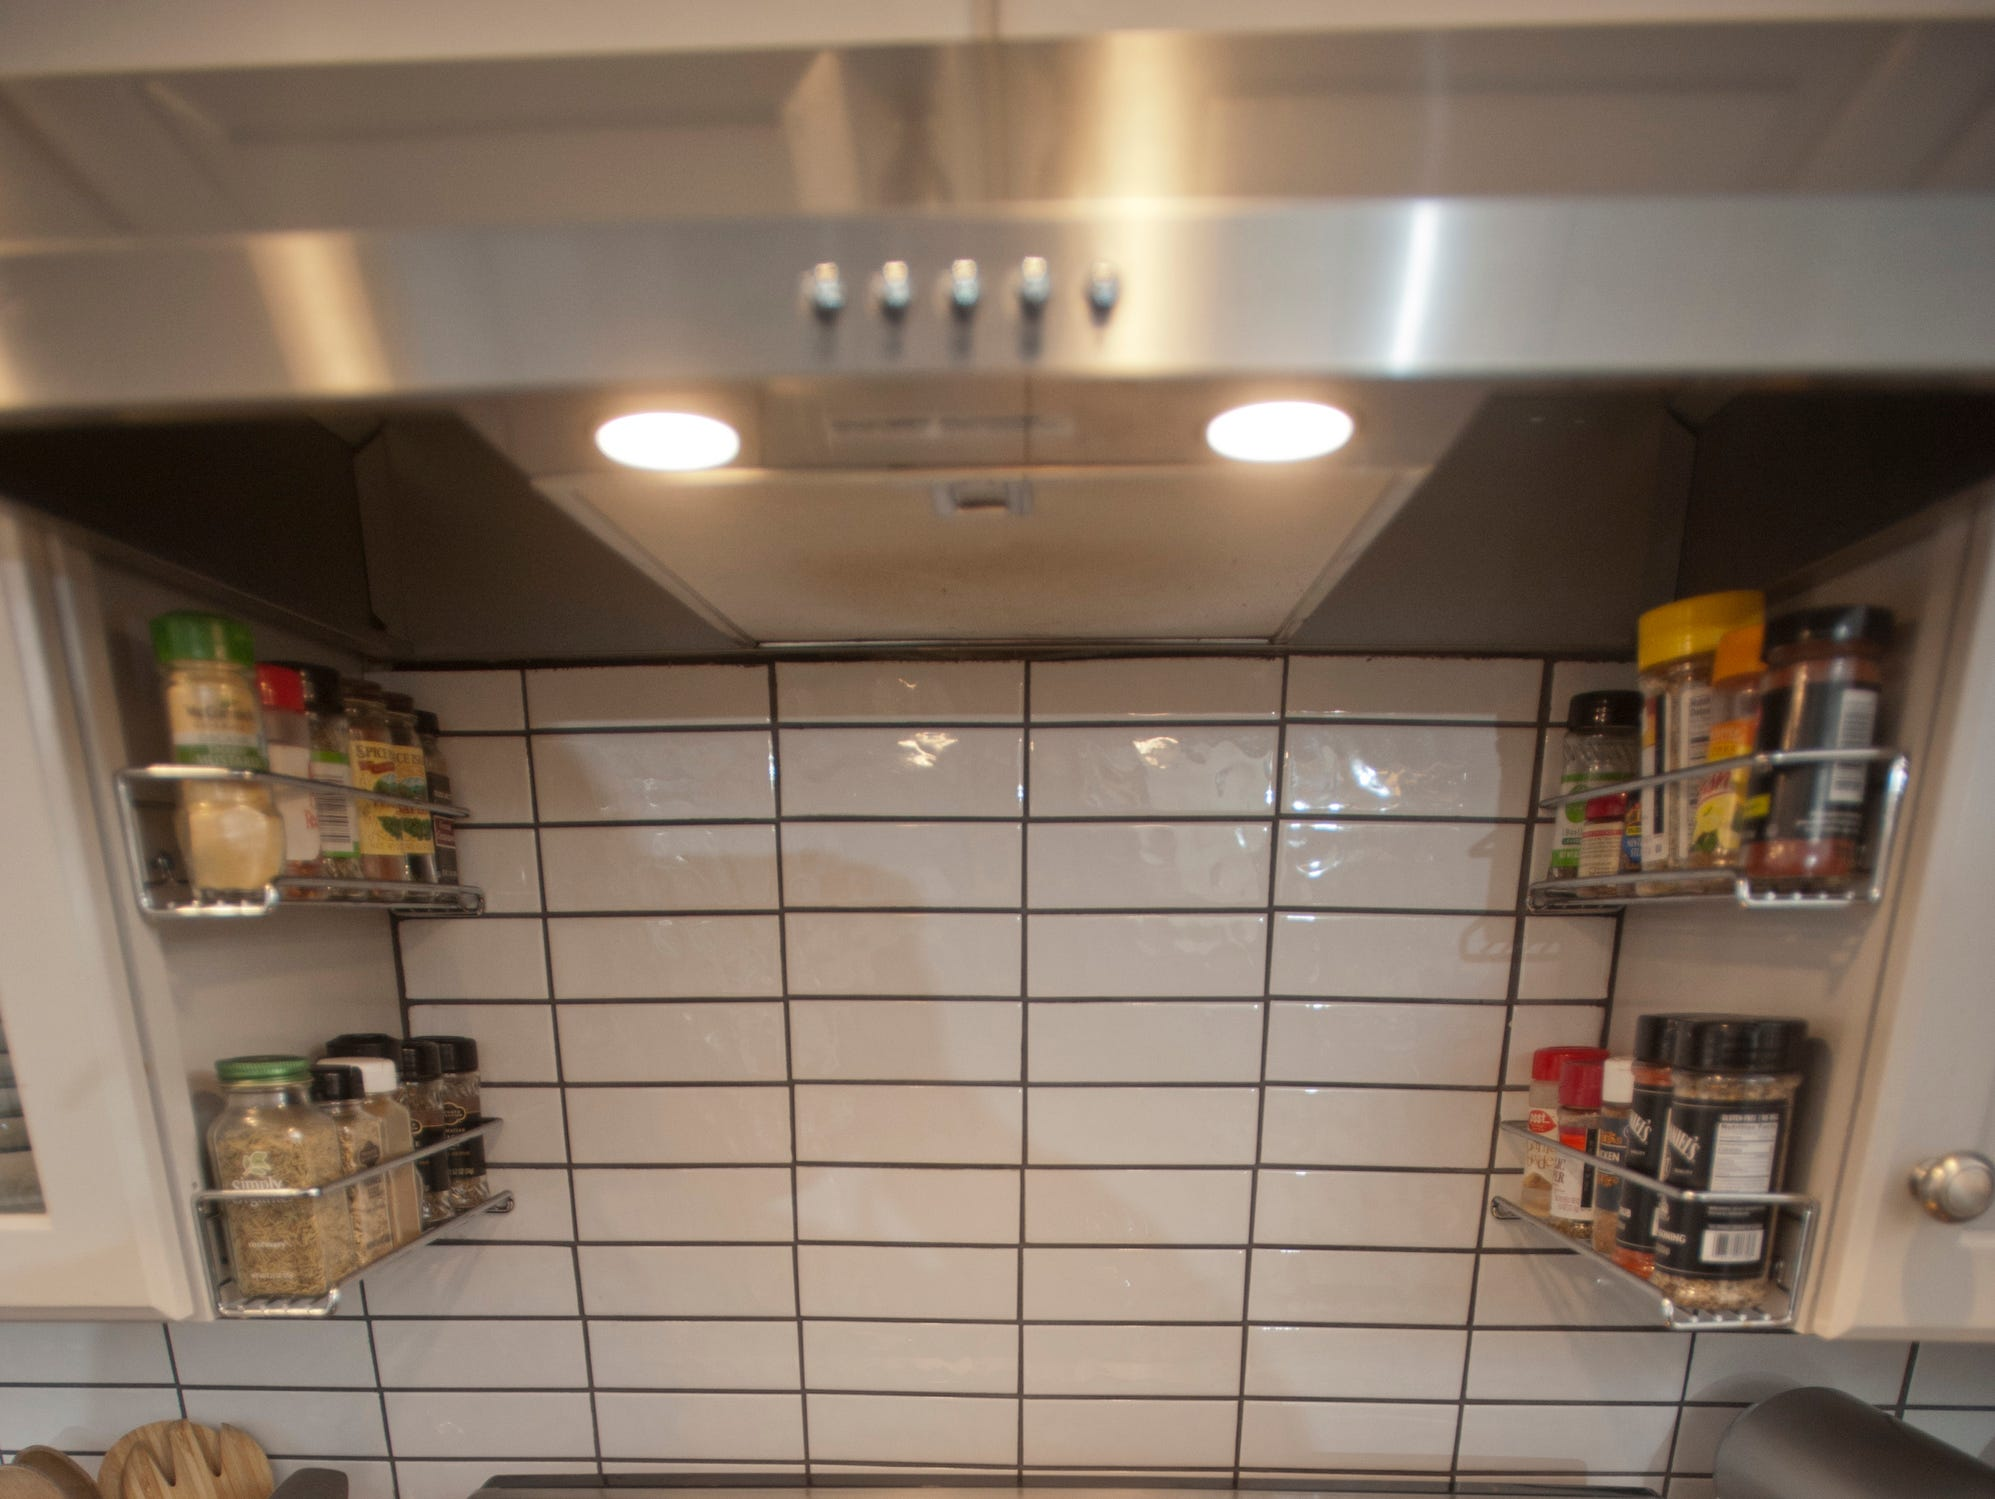 The kitchen gas range uses a grid patterned ceramic subway tile.